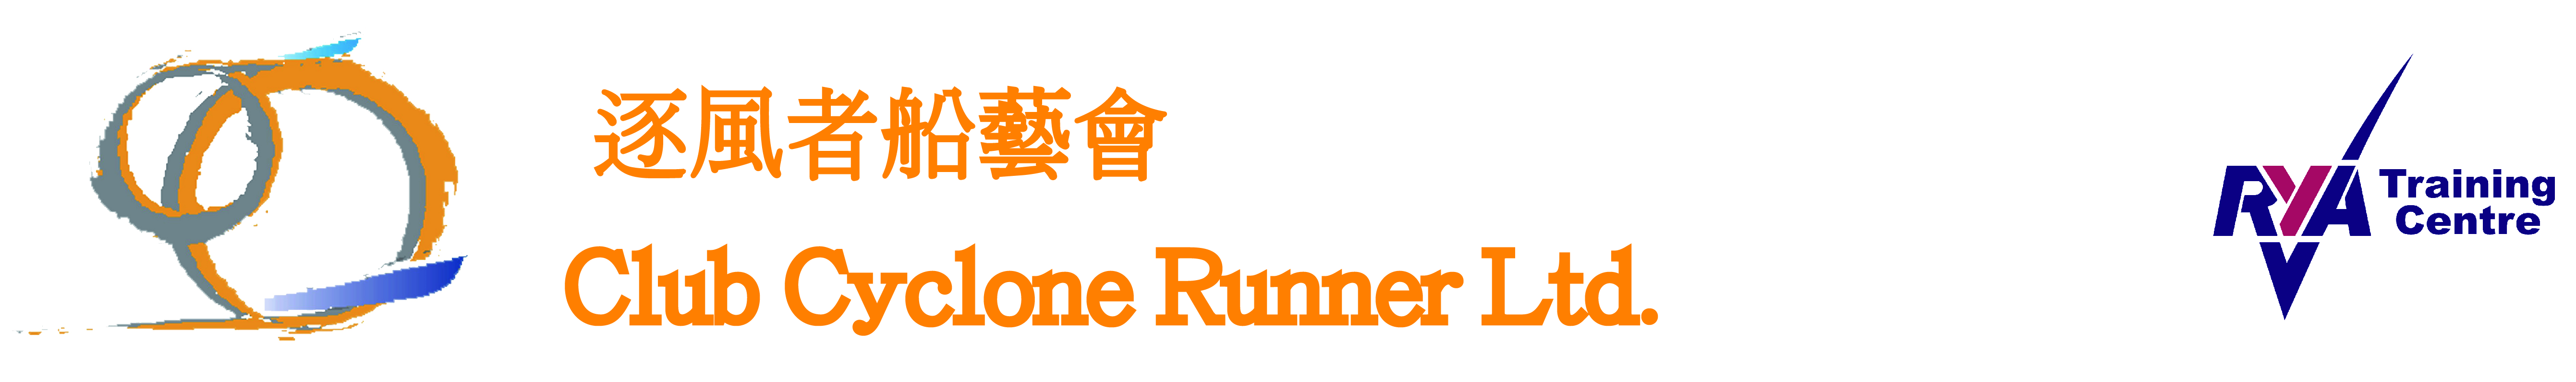 逐風者船藝會 Club Cyclone Runner Ltd